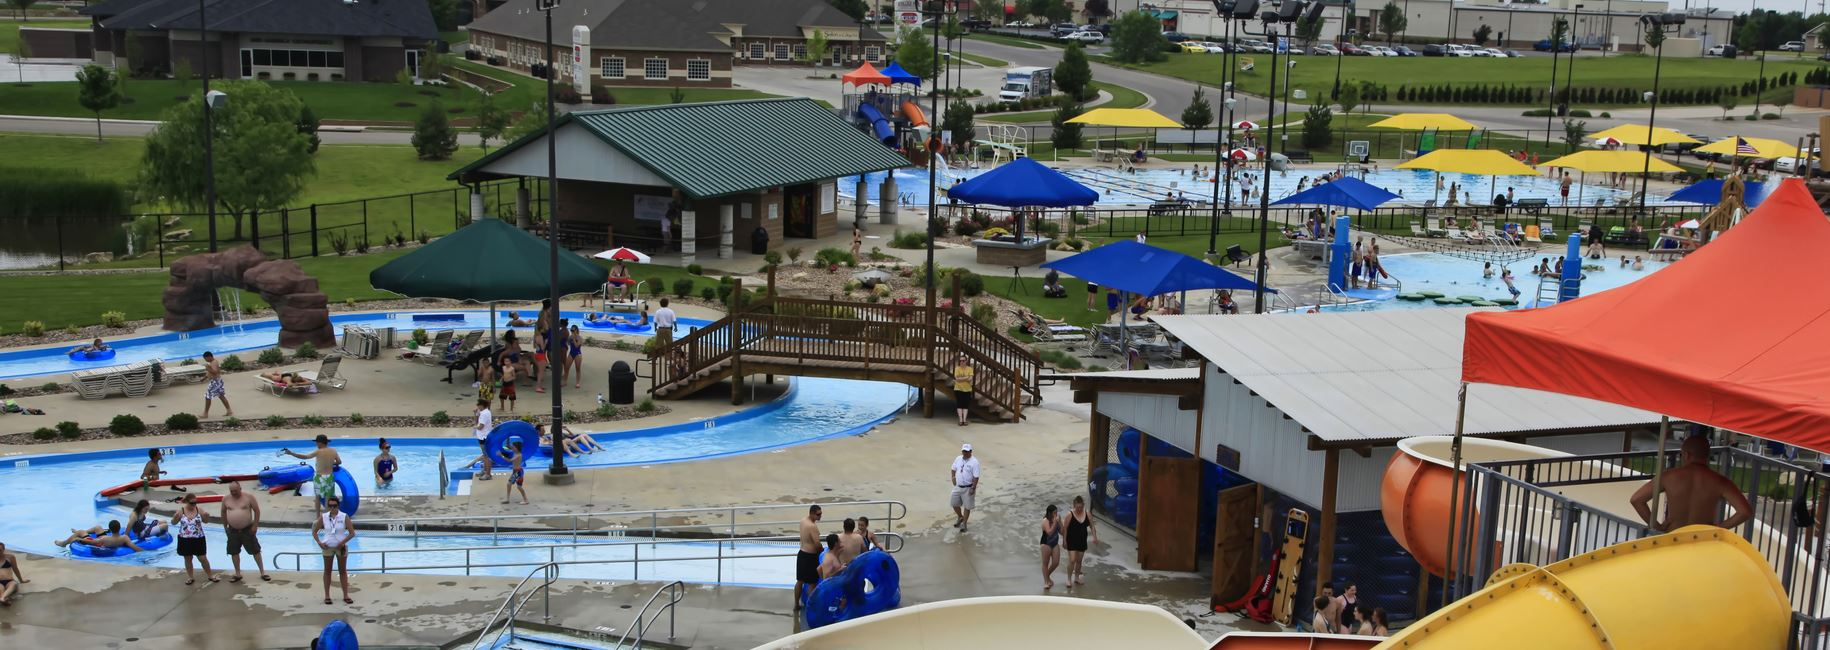 Lazy river pool at Rock River Rapids